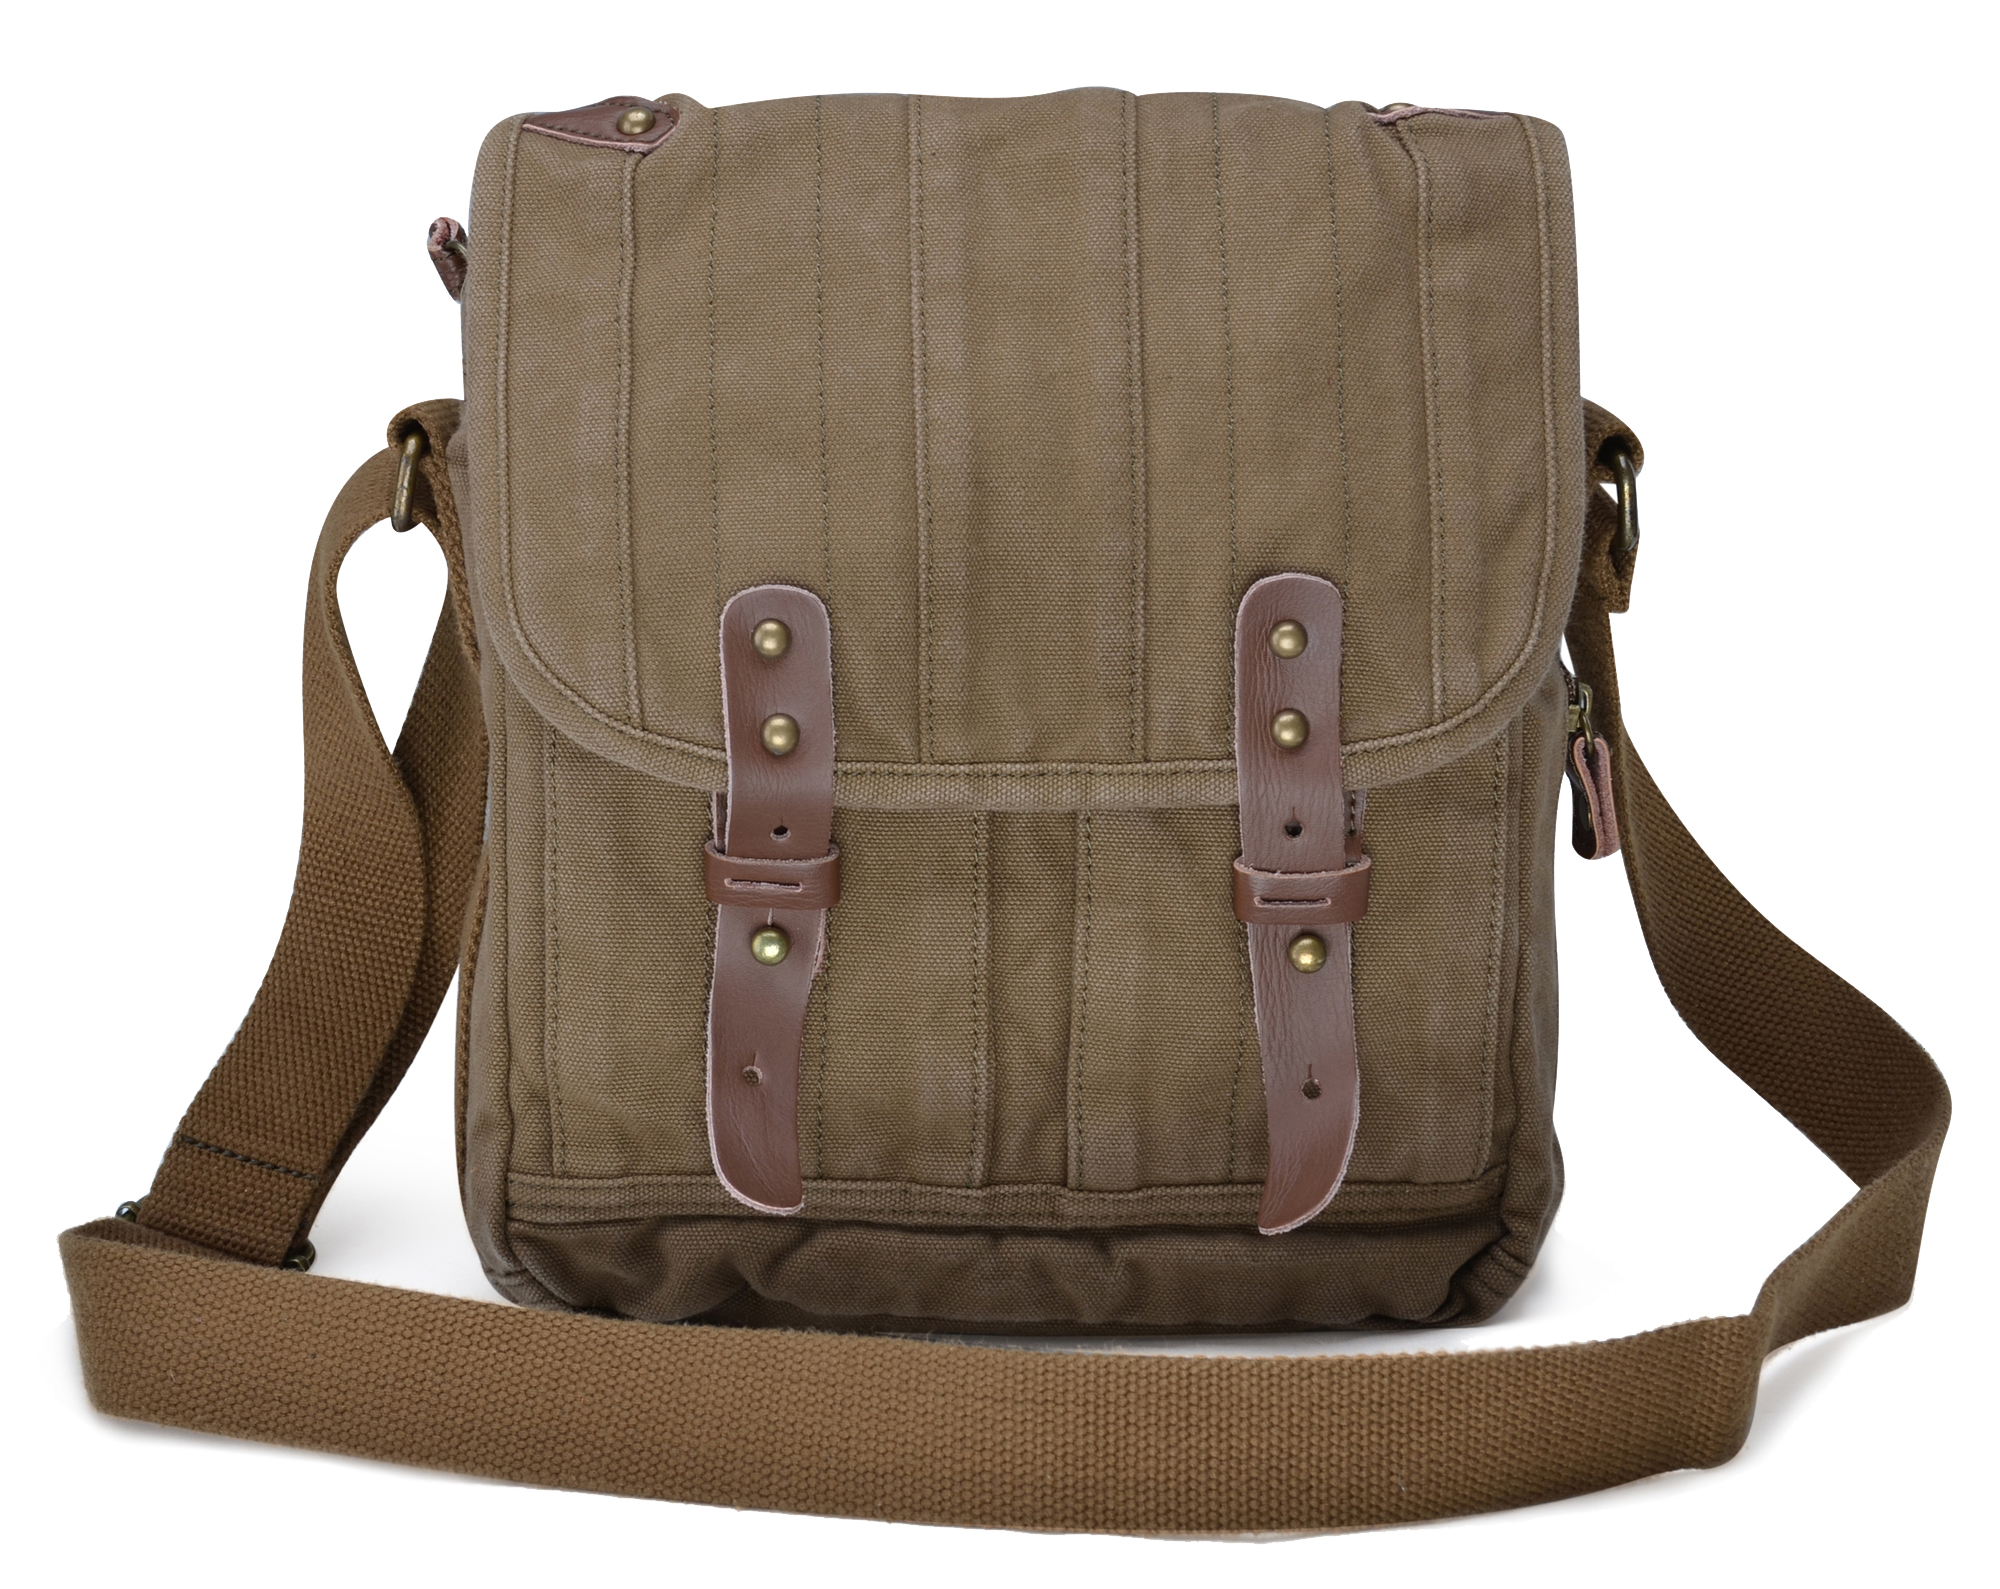 Gootium Vintage Canvas Messenger Bag Small Unisex Shoulder Satchel, Army Green